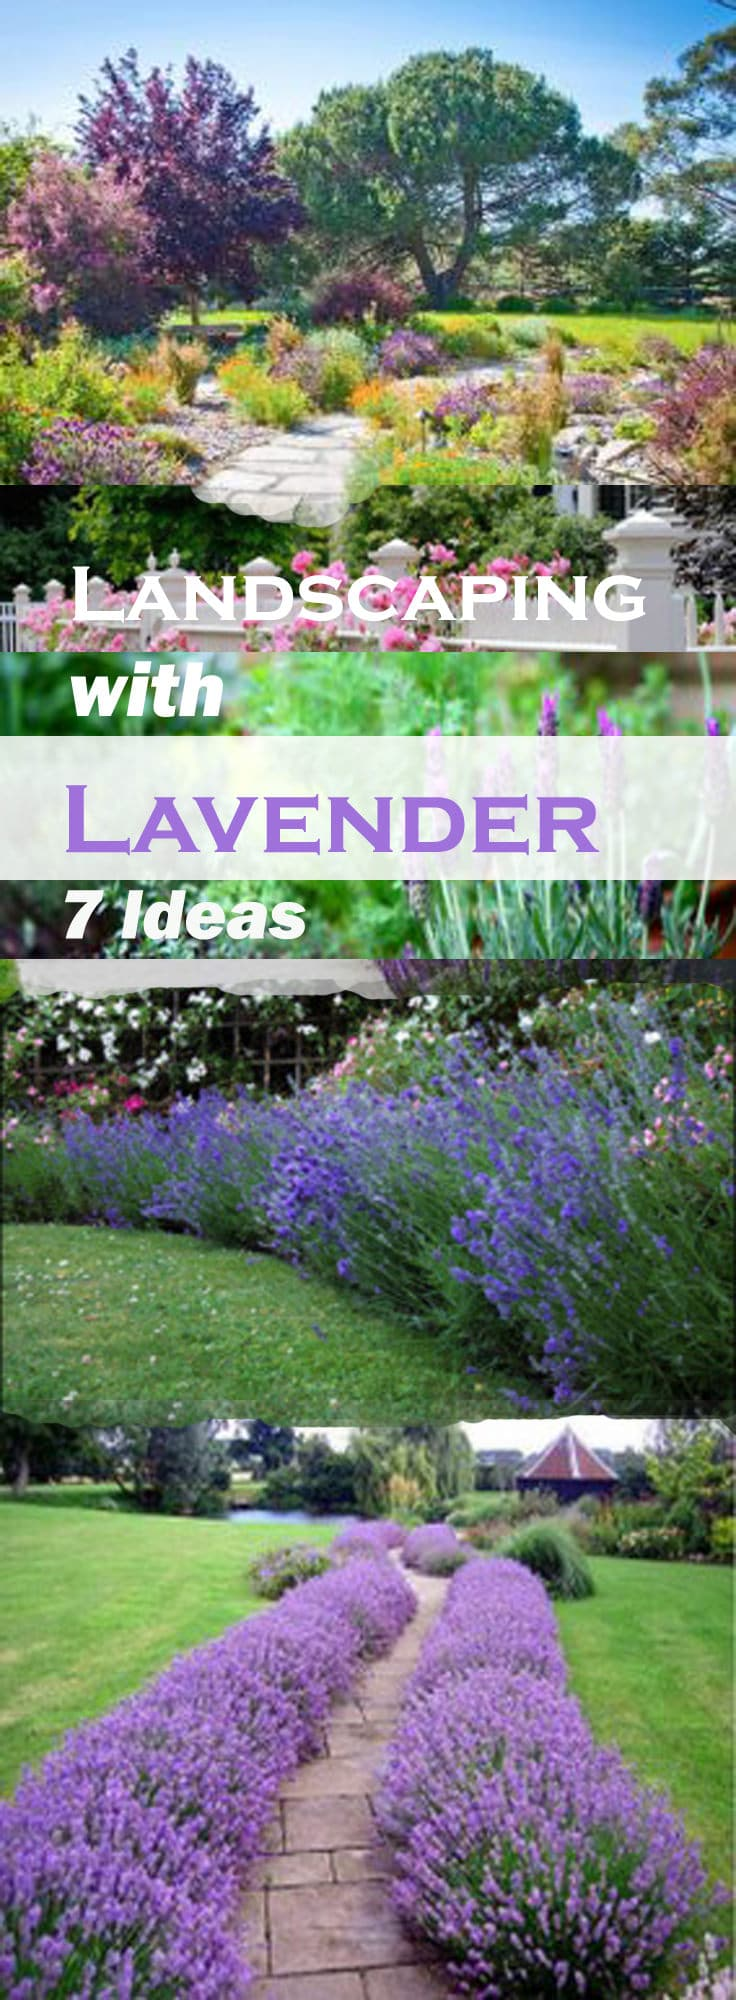 Landscaping with Lavender | 7 Garden Design Ideas on Patio And Grass Garden Ideas id=46405